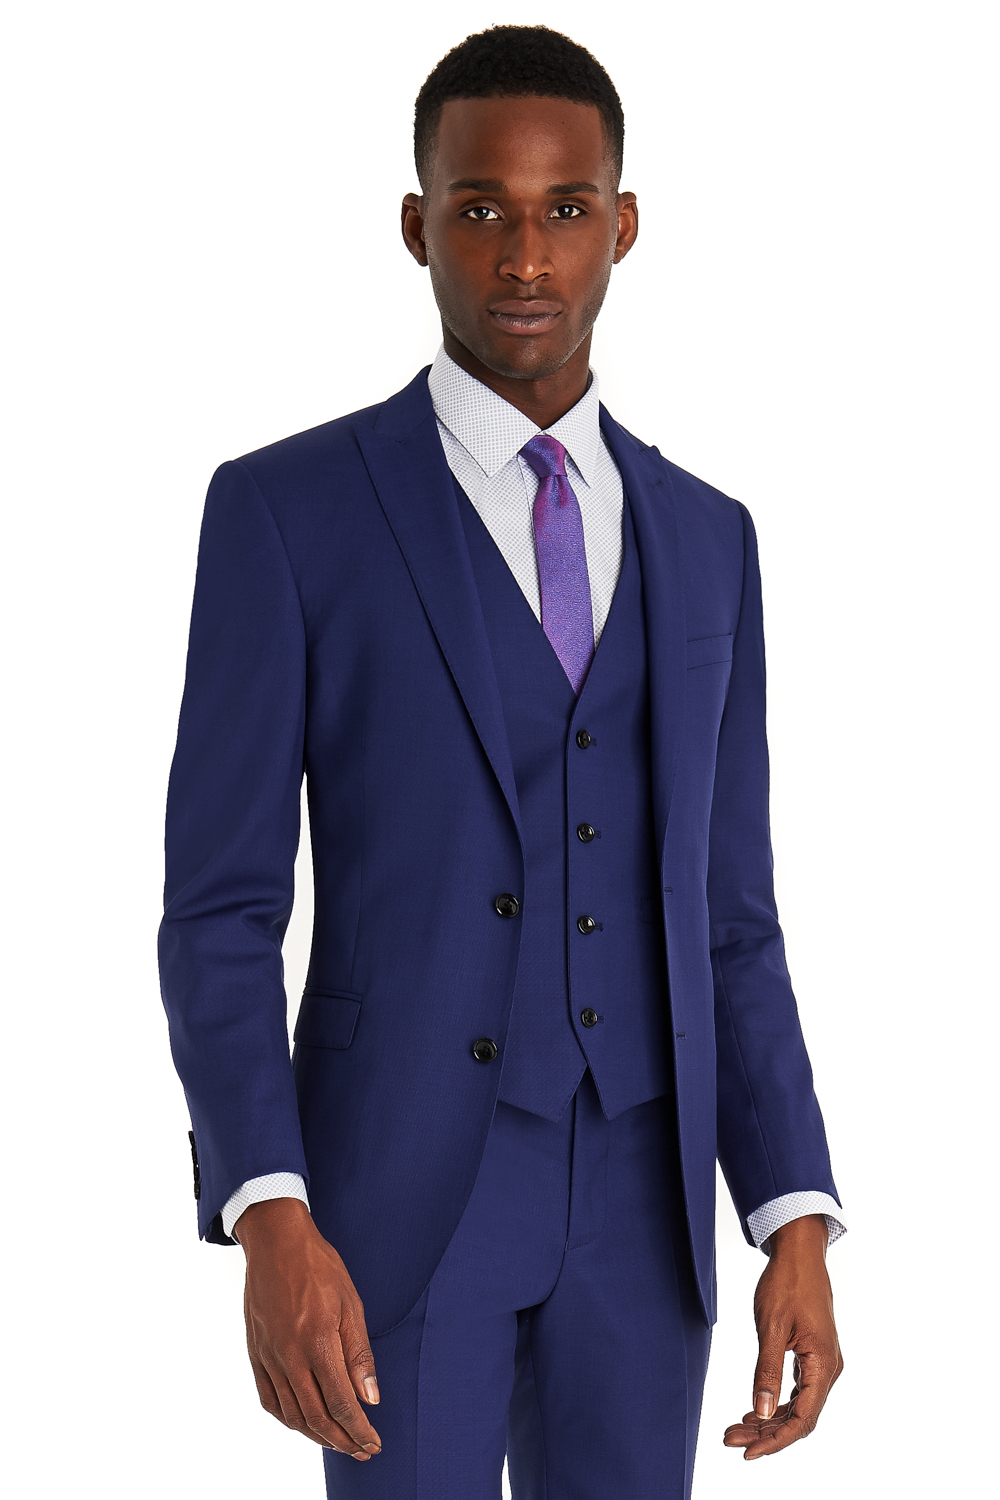 Slim Fit Men Suit 3 Piece Vested Navy Blue Notch Lapel Double Vents By AZAR MAN. Free Solid Black Skinny/Slim Tie Included. Brand New. $ Top Rated Plus. Vintage Comfort Suit Men's 44L Blue 3 Piece Suit With Vest & Pants (38Wx30L) Pre-Owned. $ or Best Offer +$ shipping.